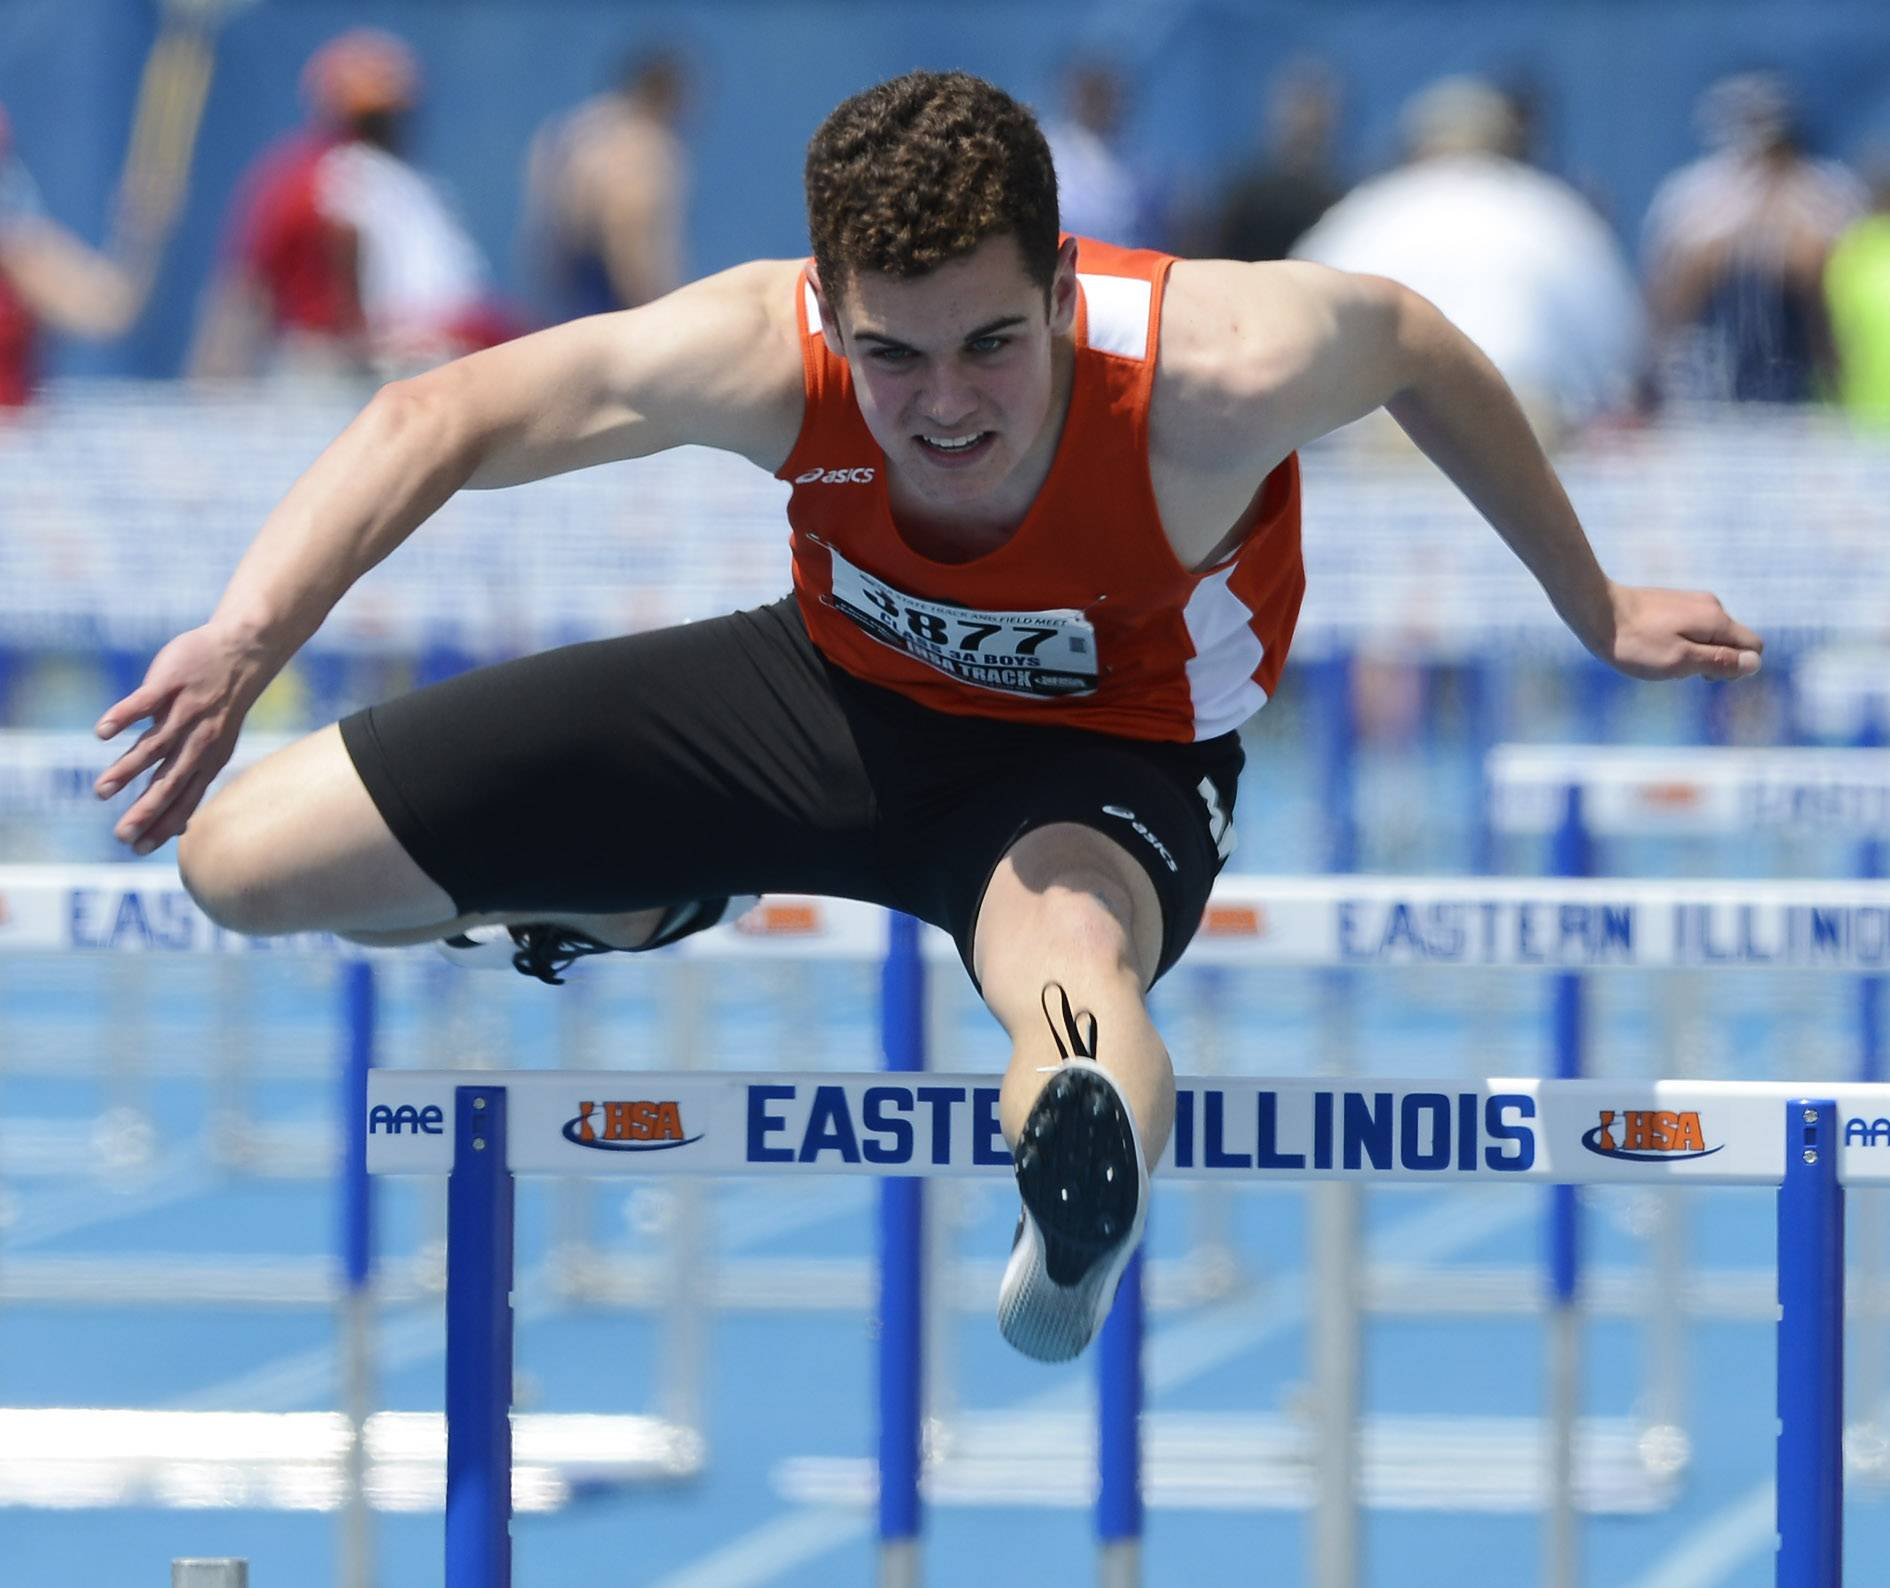 St. Charles East's Kyle Decker clears the last hurdle in the 110-meter high hurdles during the boys Class 3A state track and field preliminaries in Charleston Friday.